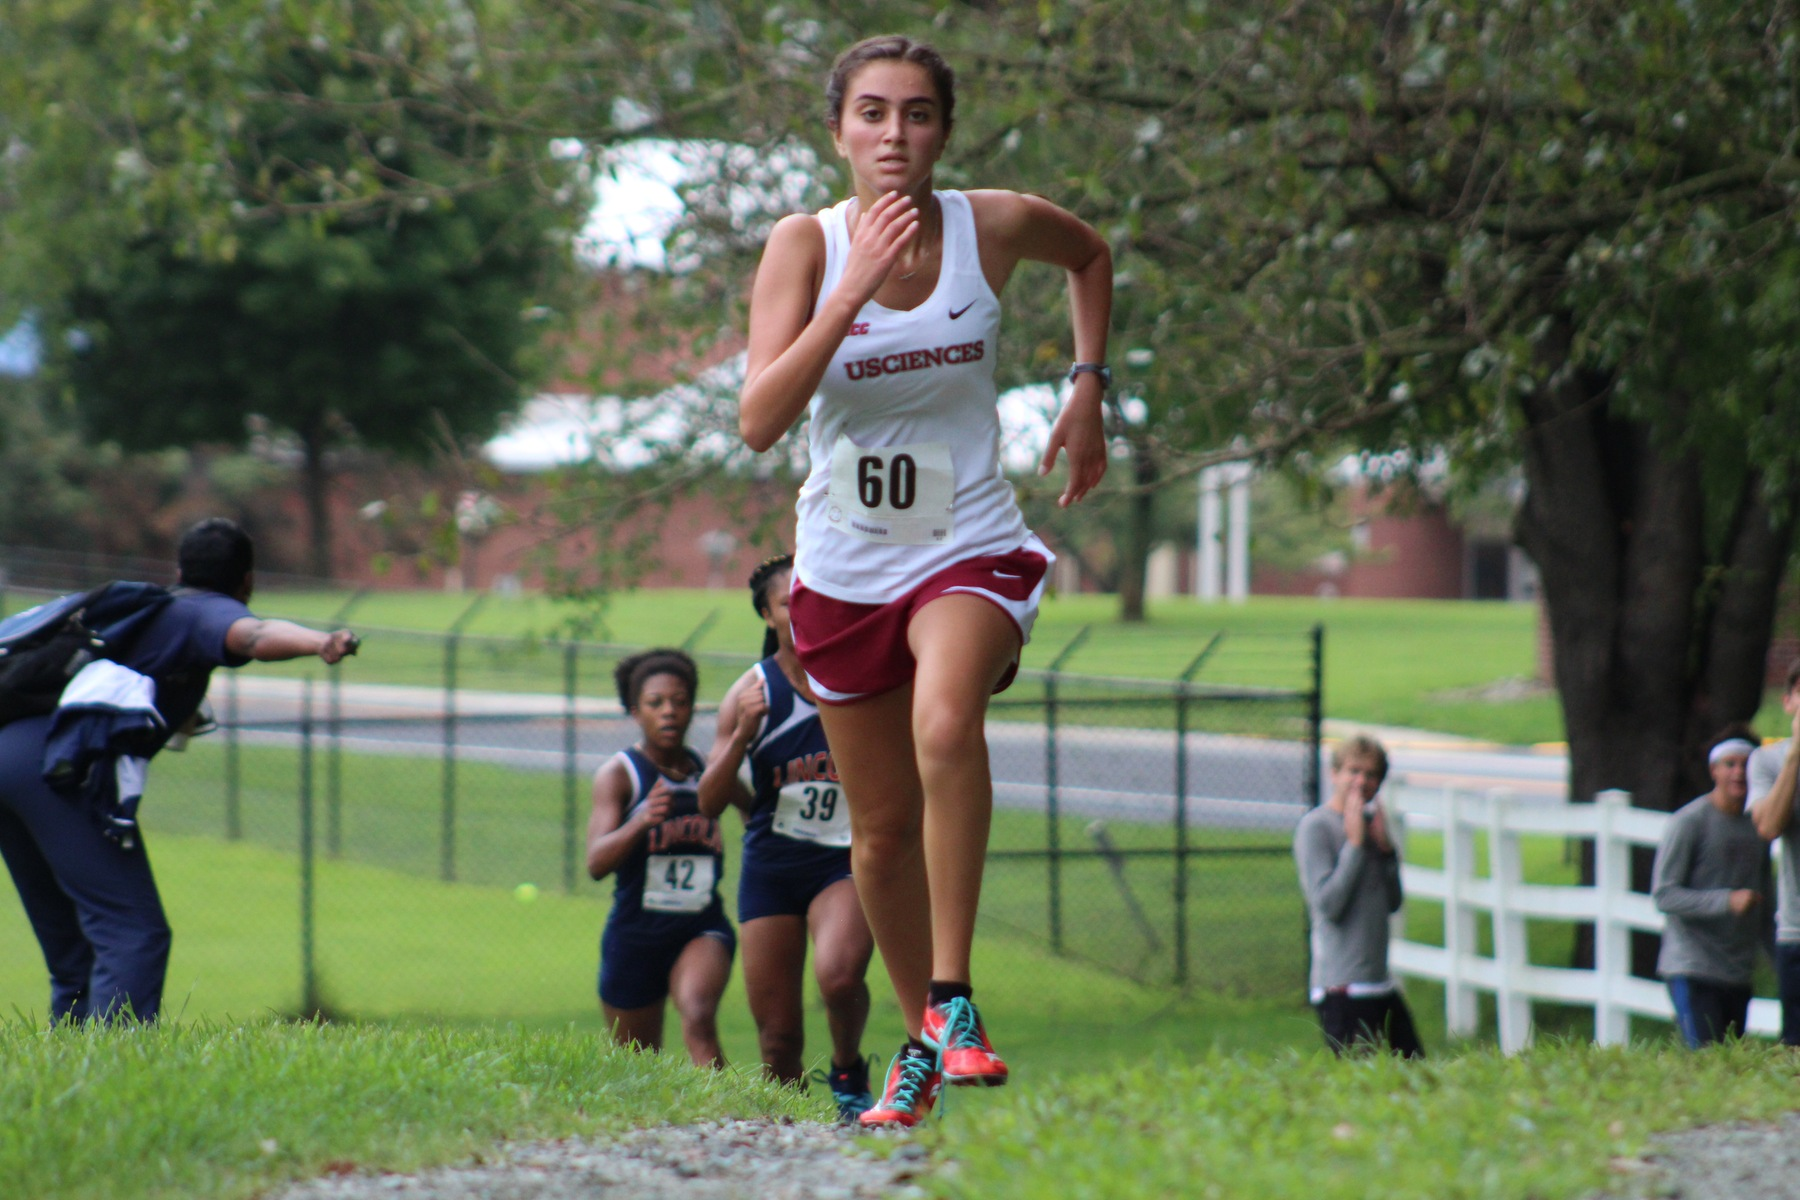 Sauers' Top-Five Finish Propels Women's Cross Country to Sixth Place Finish at Philadelphia Metro Championship